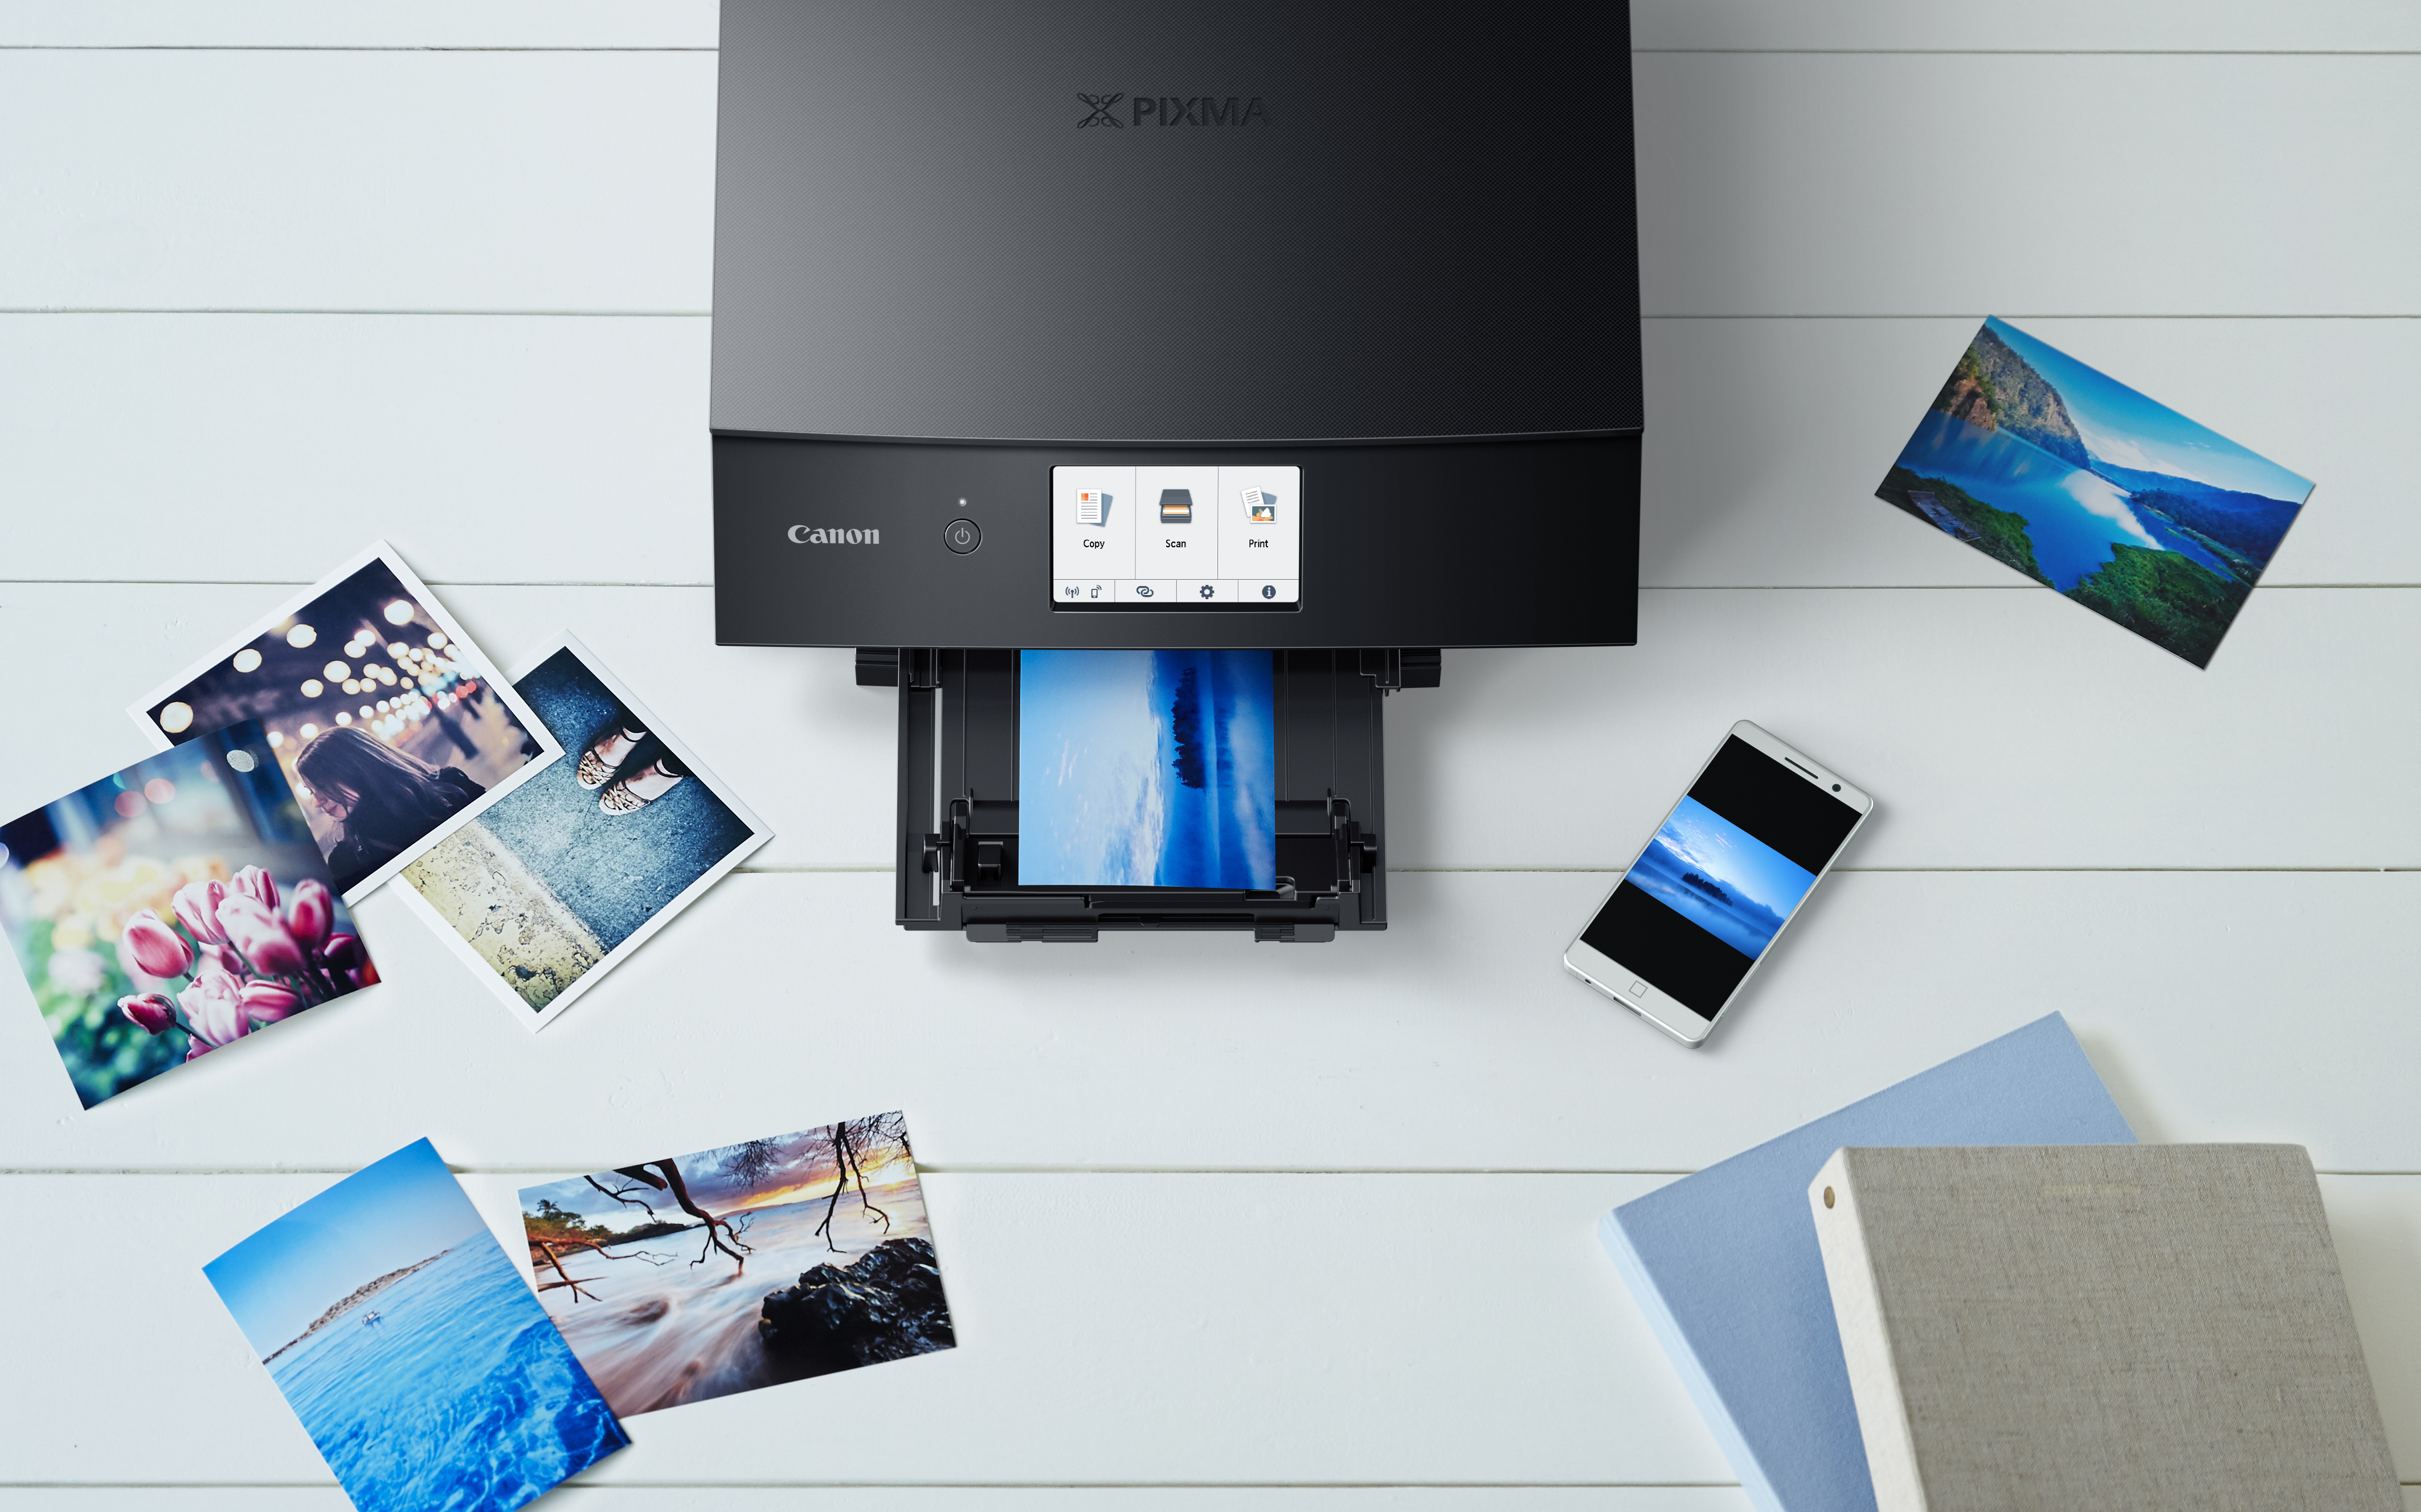 Canon Launches New PIXMA All-in-One Photo Printers and LiDE  Ultra-slim Flatbed Scanner